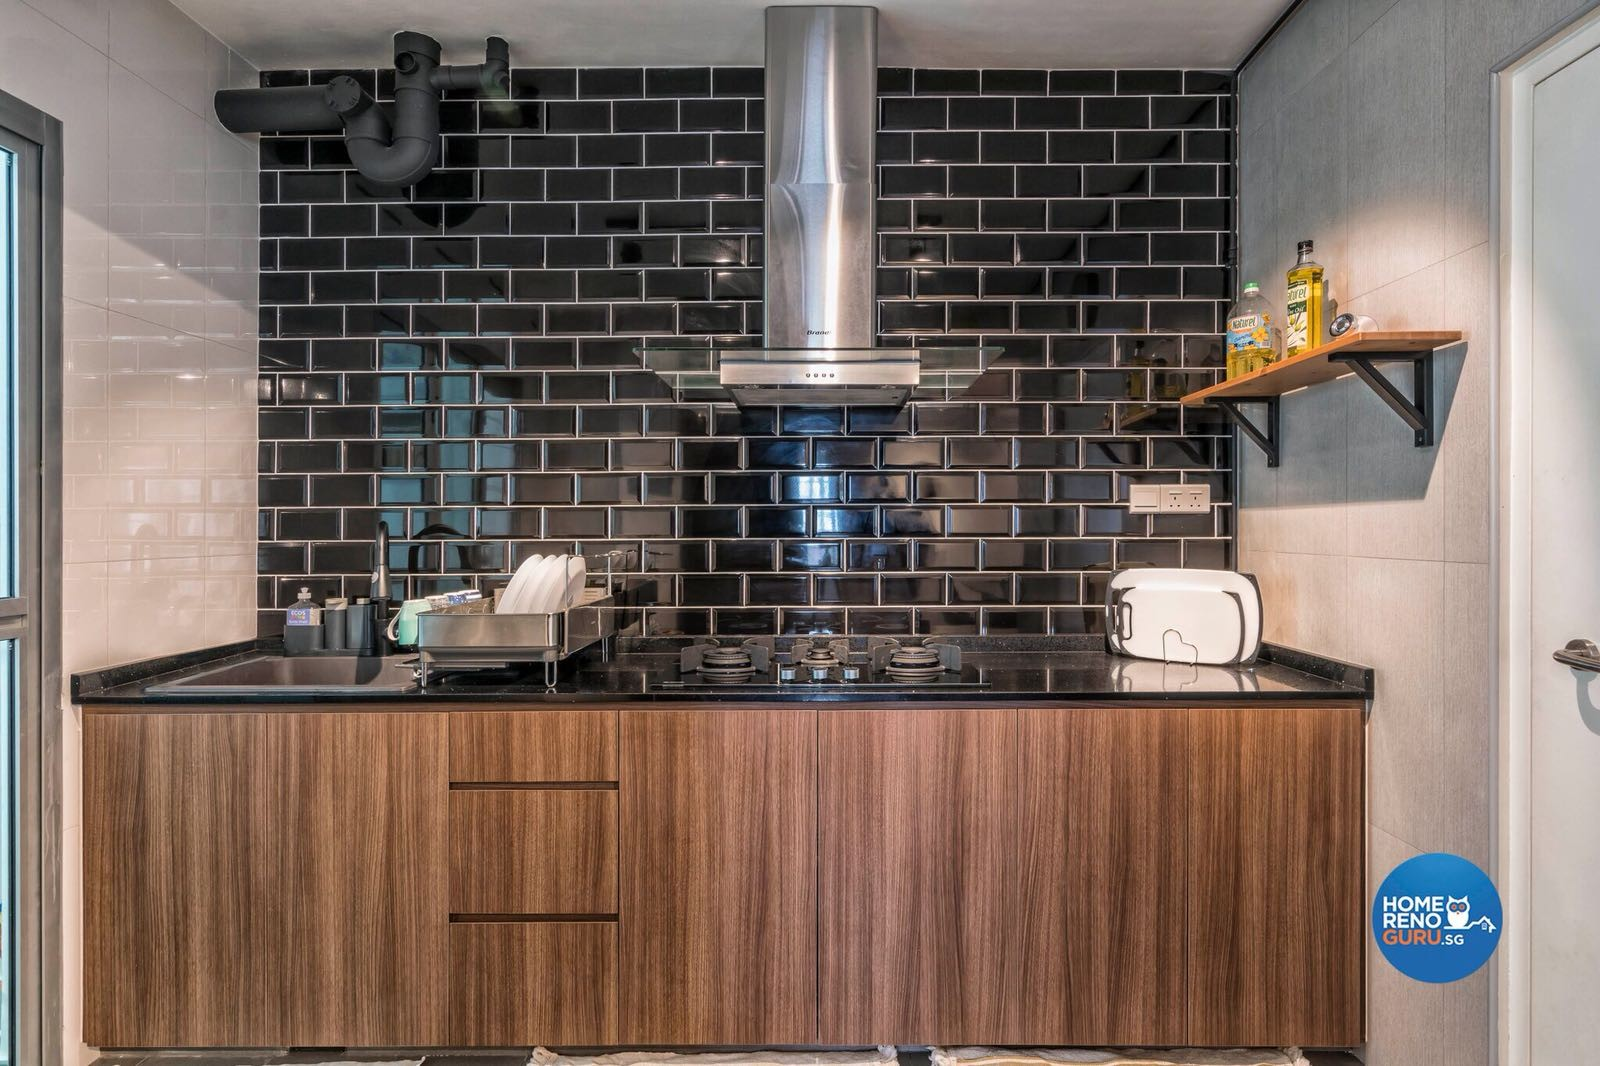 U Home Interior Design Pte Ltd Updated Sep 2020 Singapore Interior Designer Reviews And Projects Hometrust